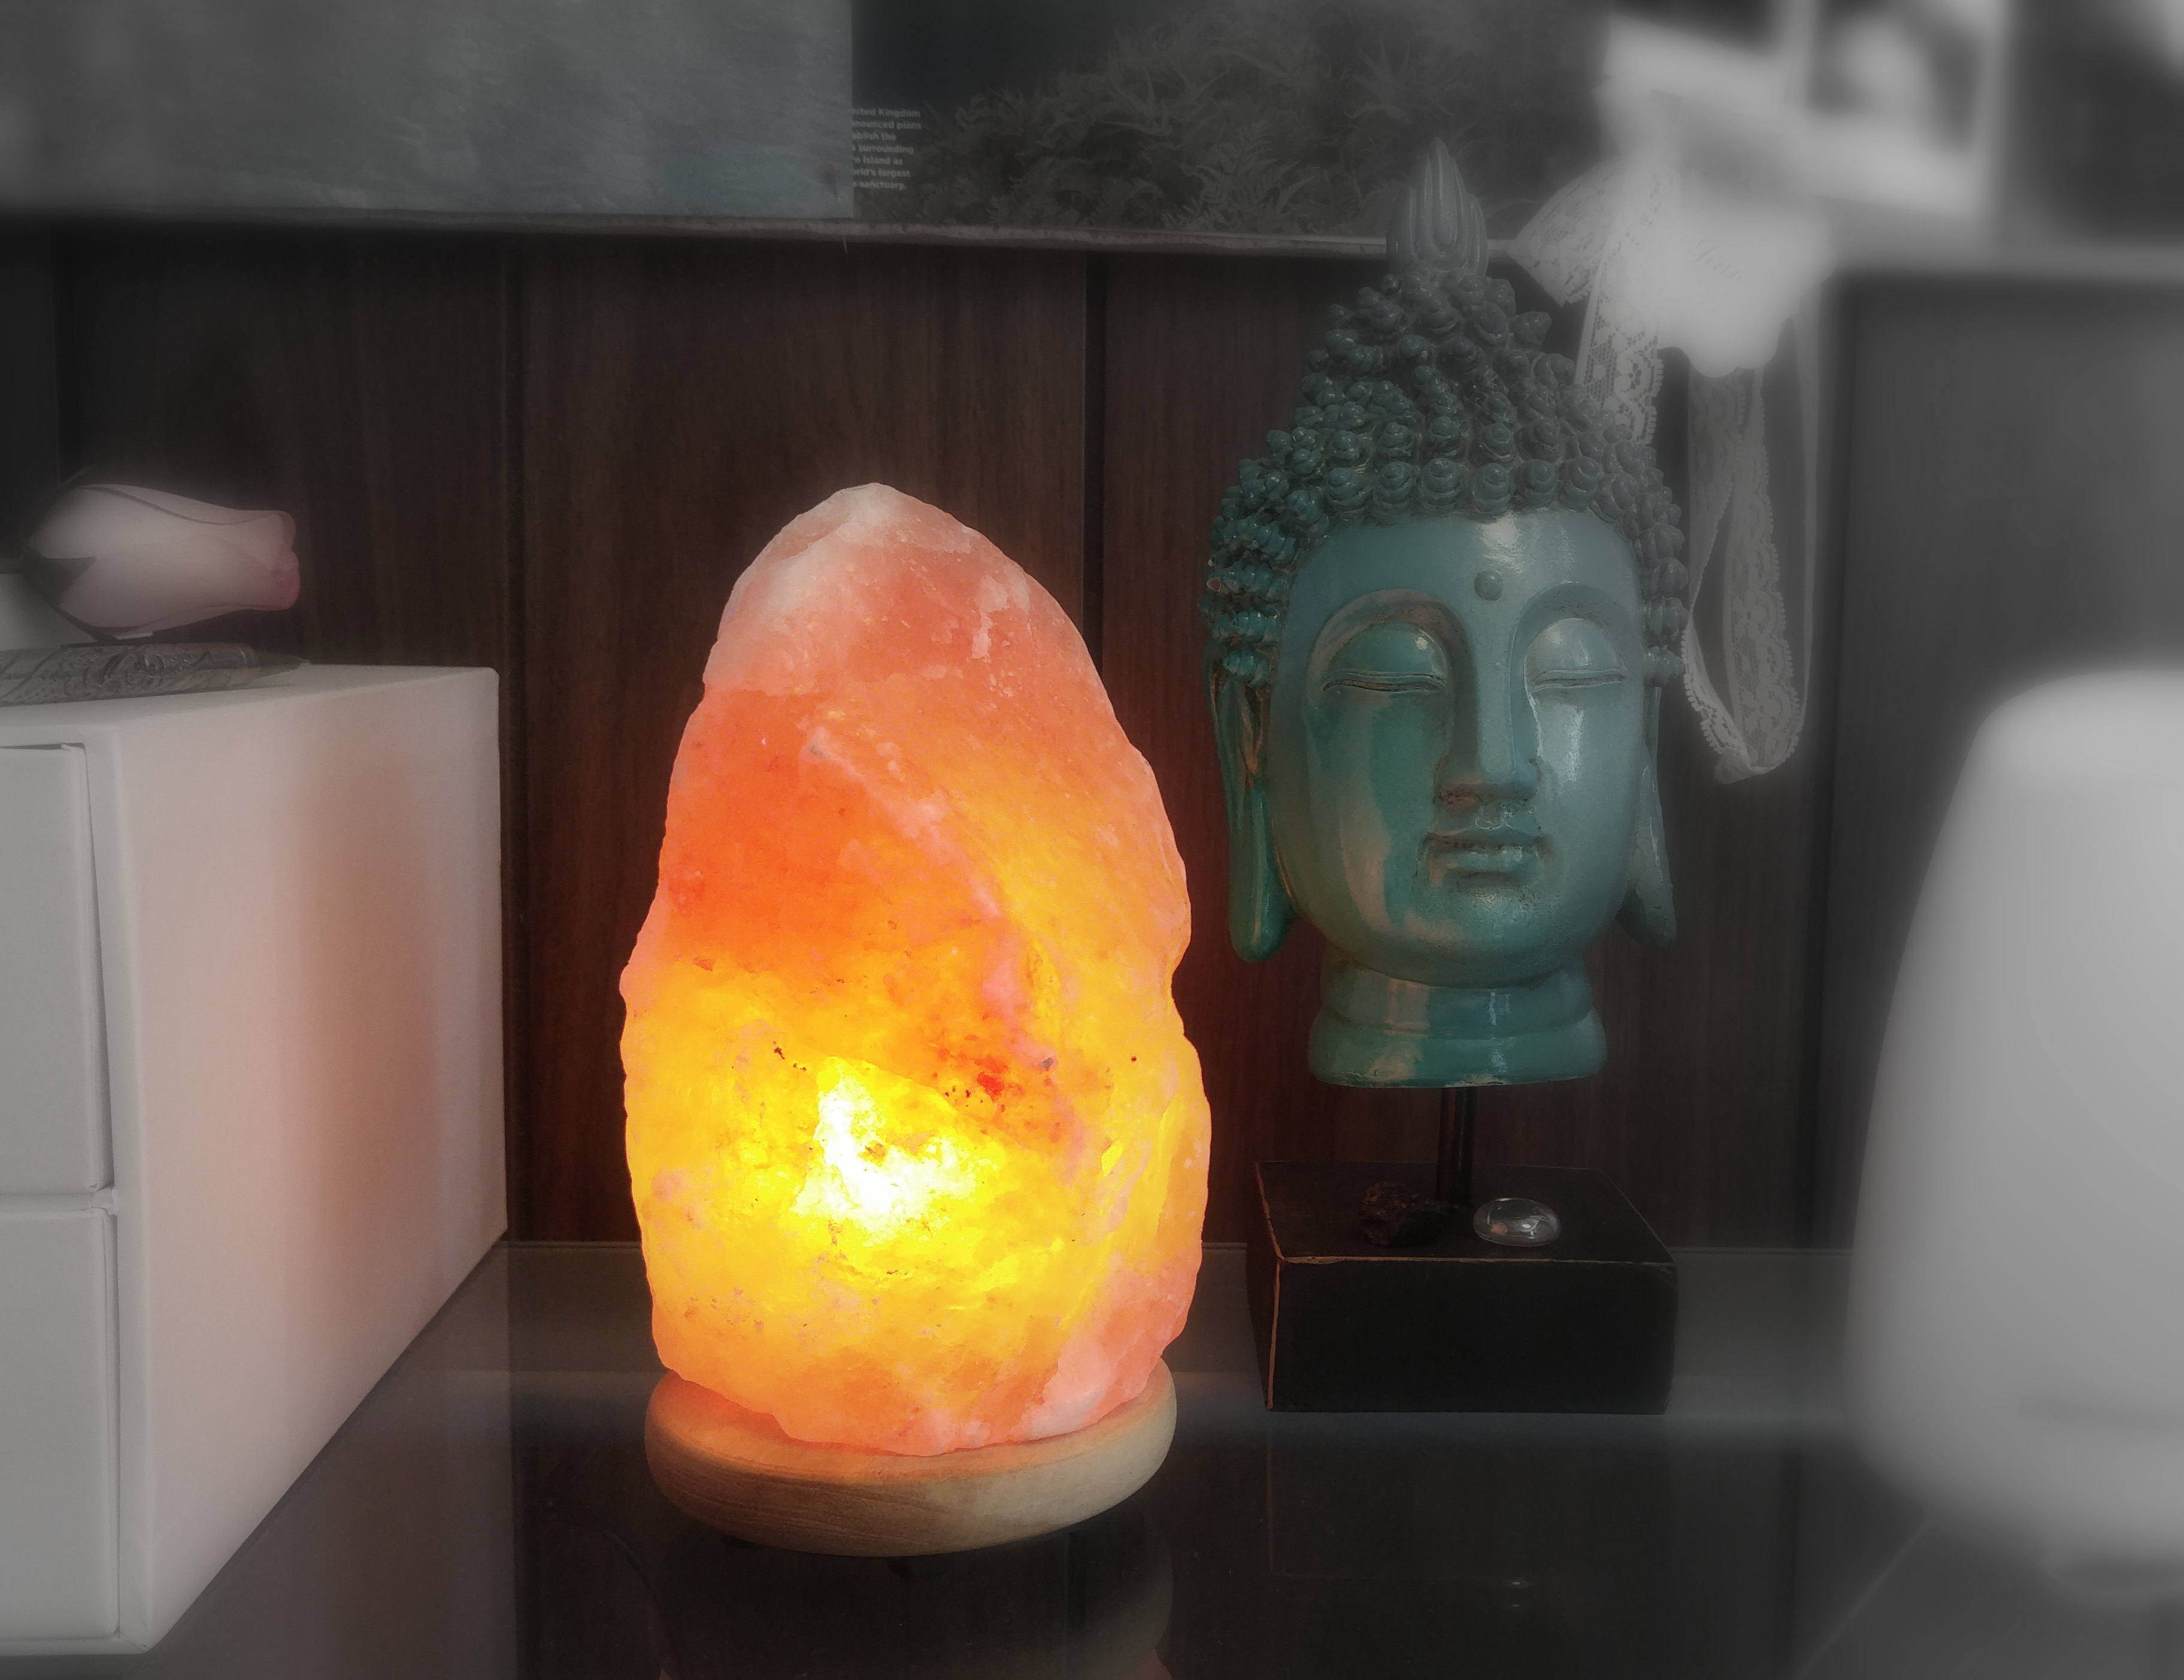 Himalayan Salt Lamp Sleep Apnea : Saltopia Himalayan Salt Lamps - My Highest Self